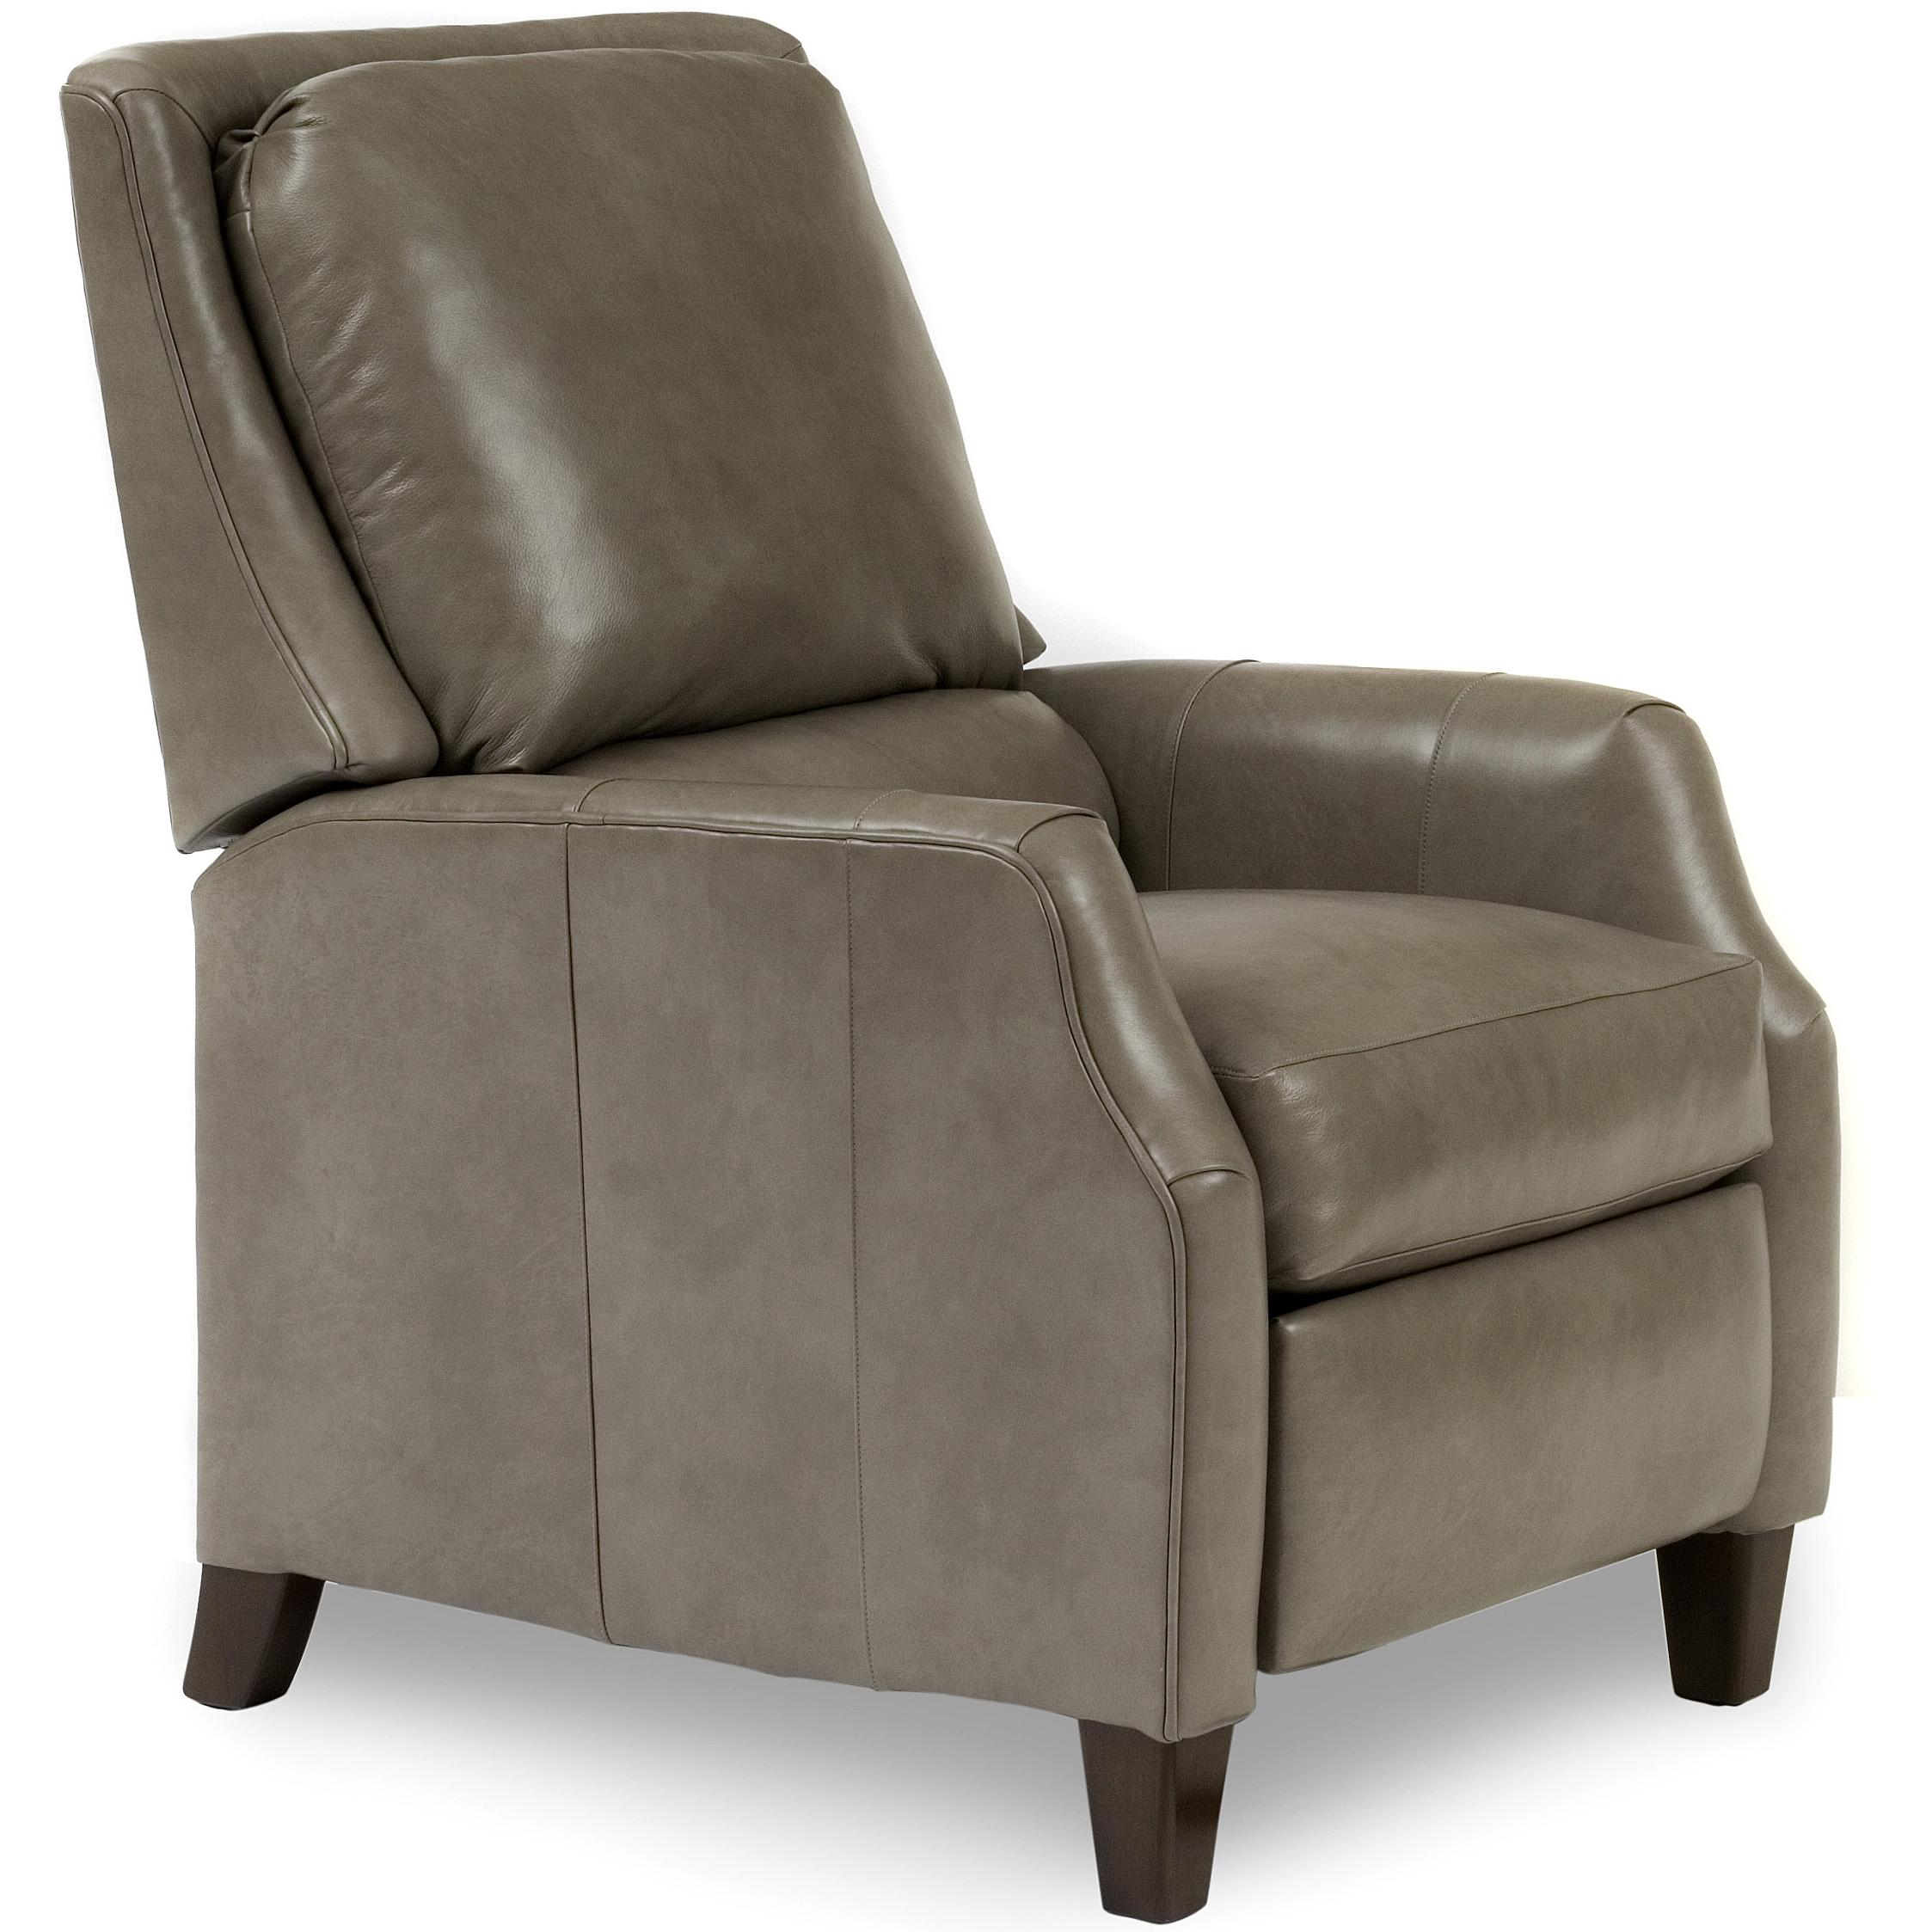 Recliners  High Leg Motorized Recliner by Smith Brothers at Saugerties Furniture Mart